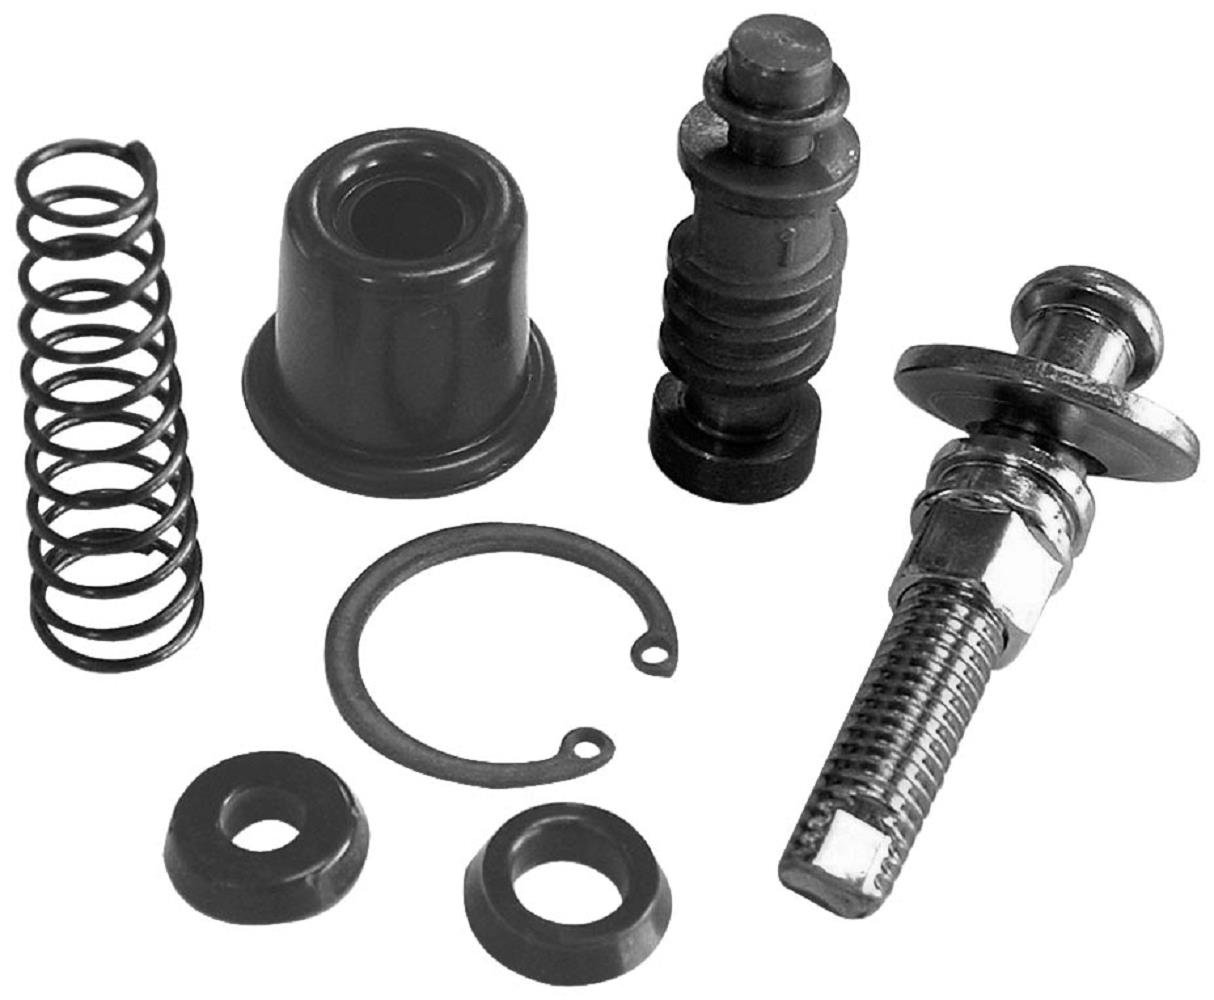 K&L Supply Master Cylinder Rebuild Kit 32-8048 TRTC9729 Z29-3014